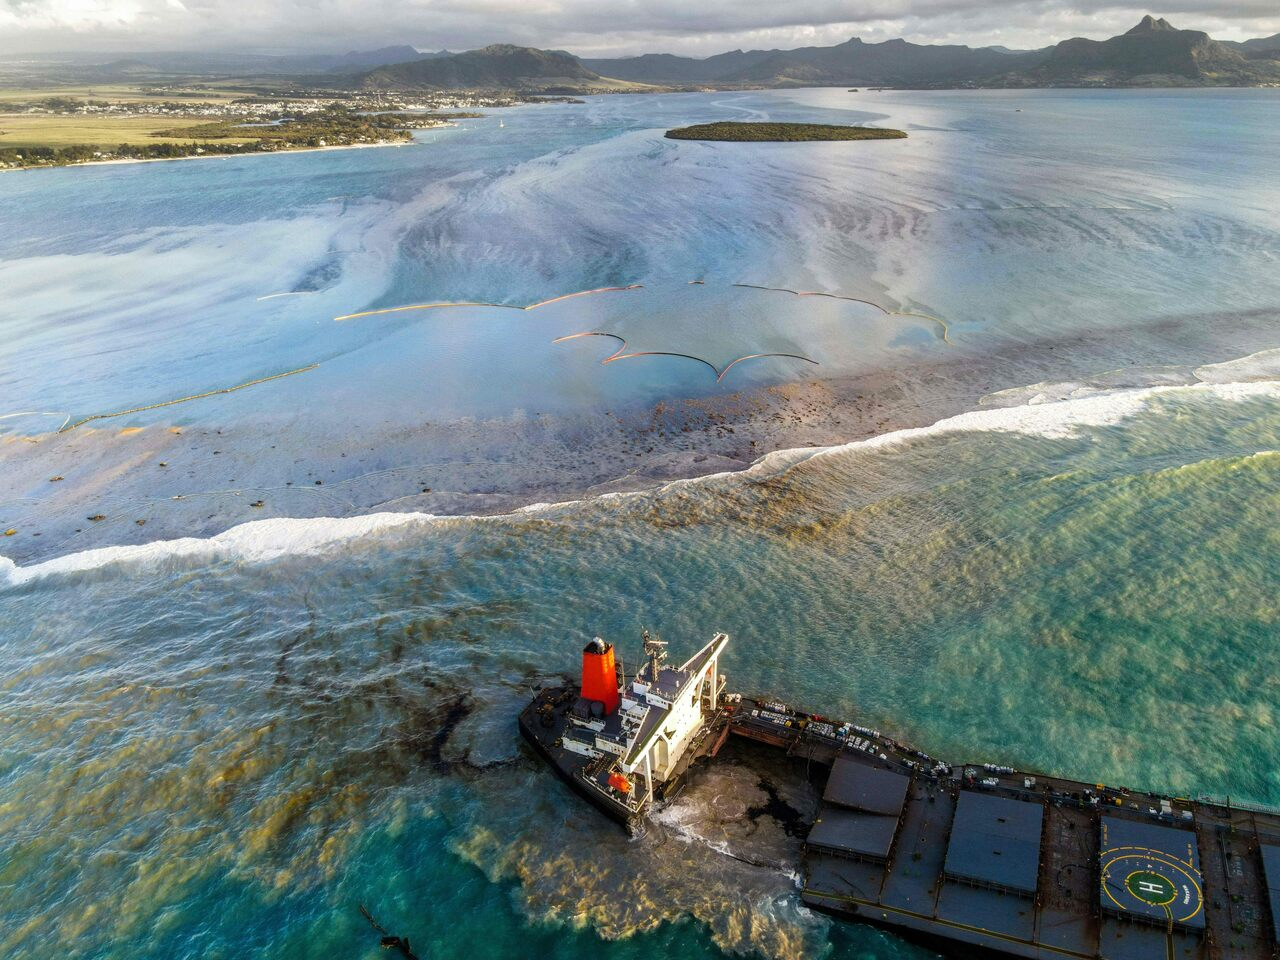 The vessel MV Wakashio ran aground off the southeast coast of Mauritius in July 2020, leaking oil that fouled waters known internationally for their biodiversity.